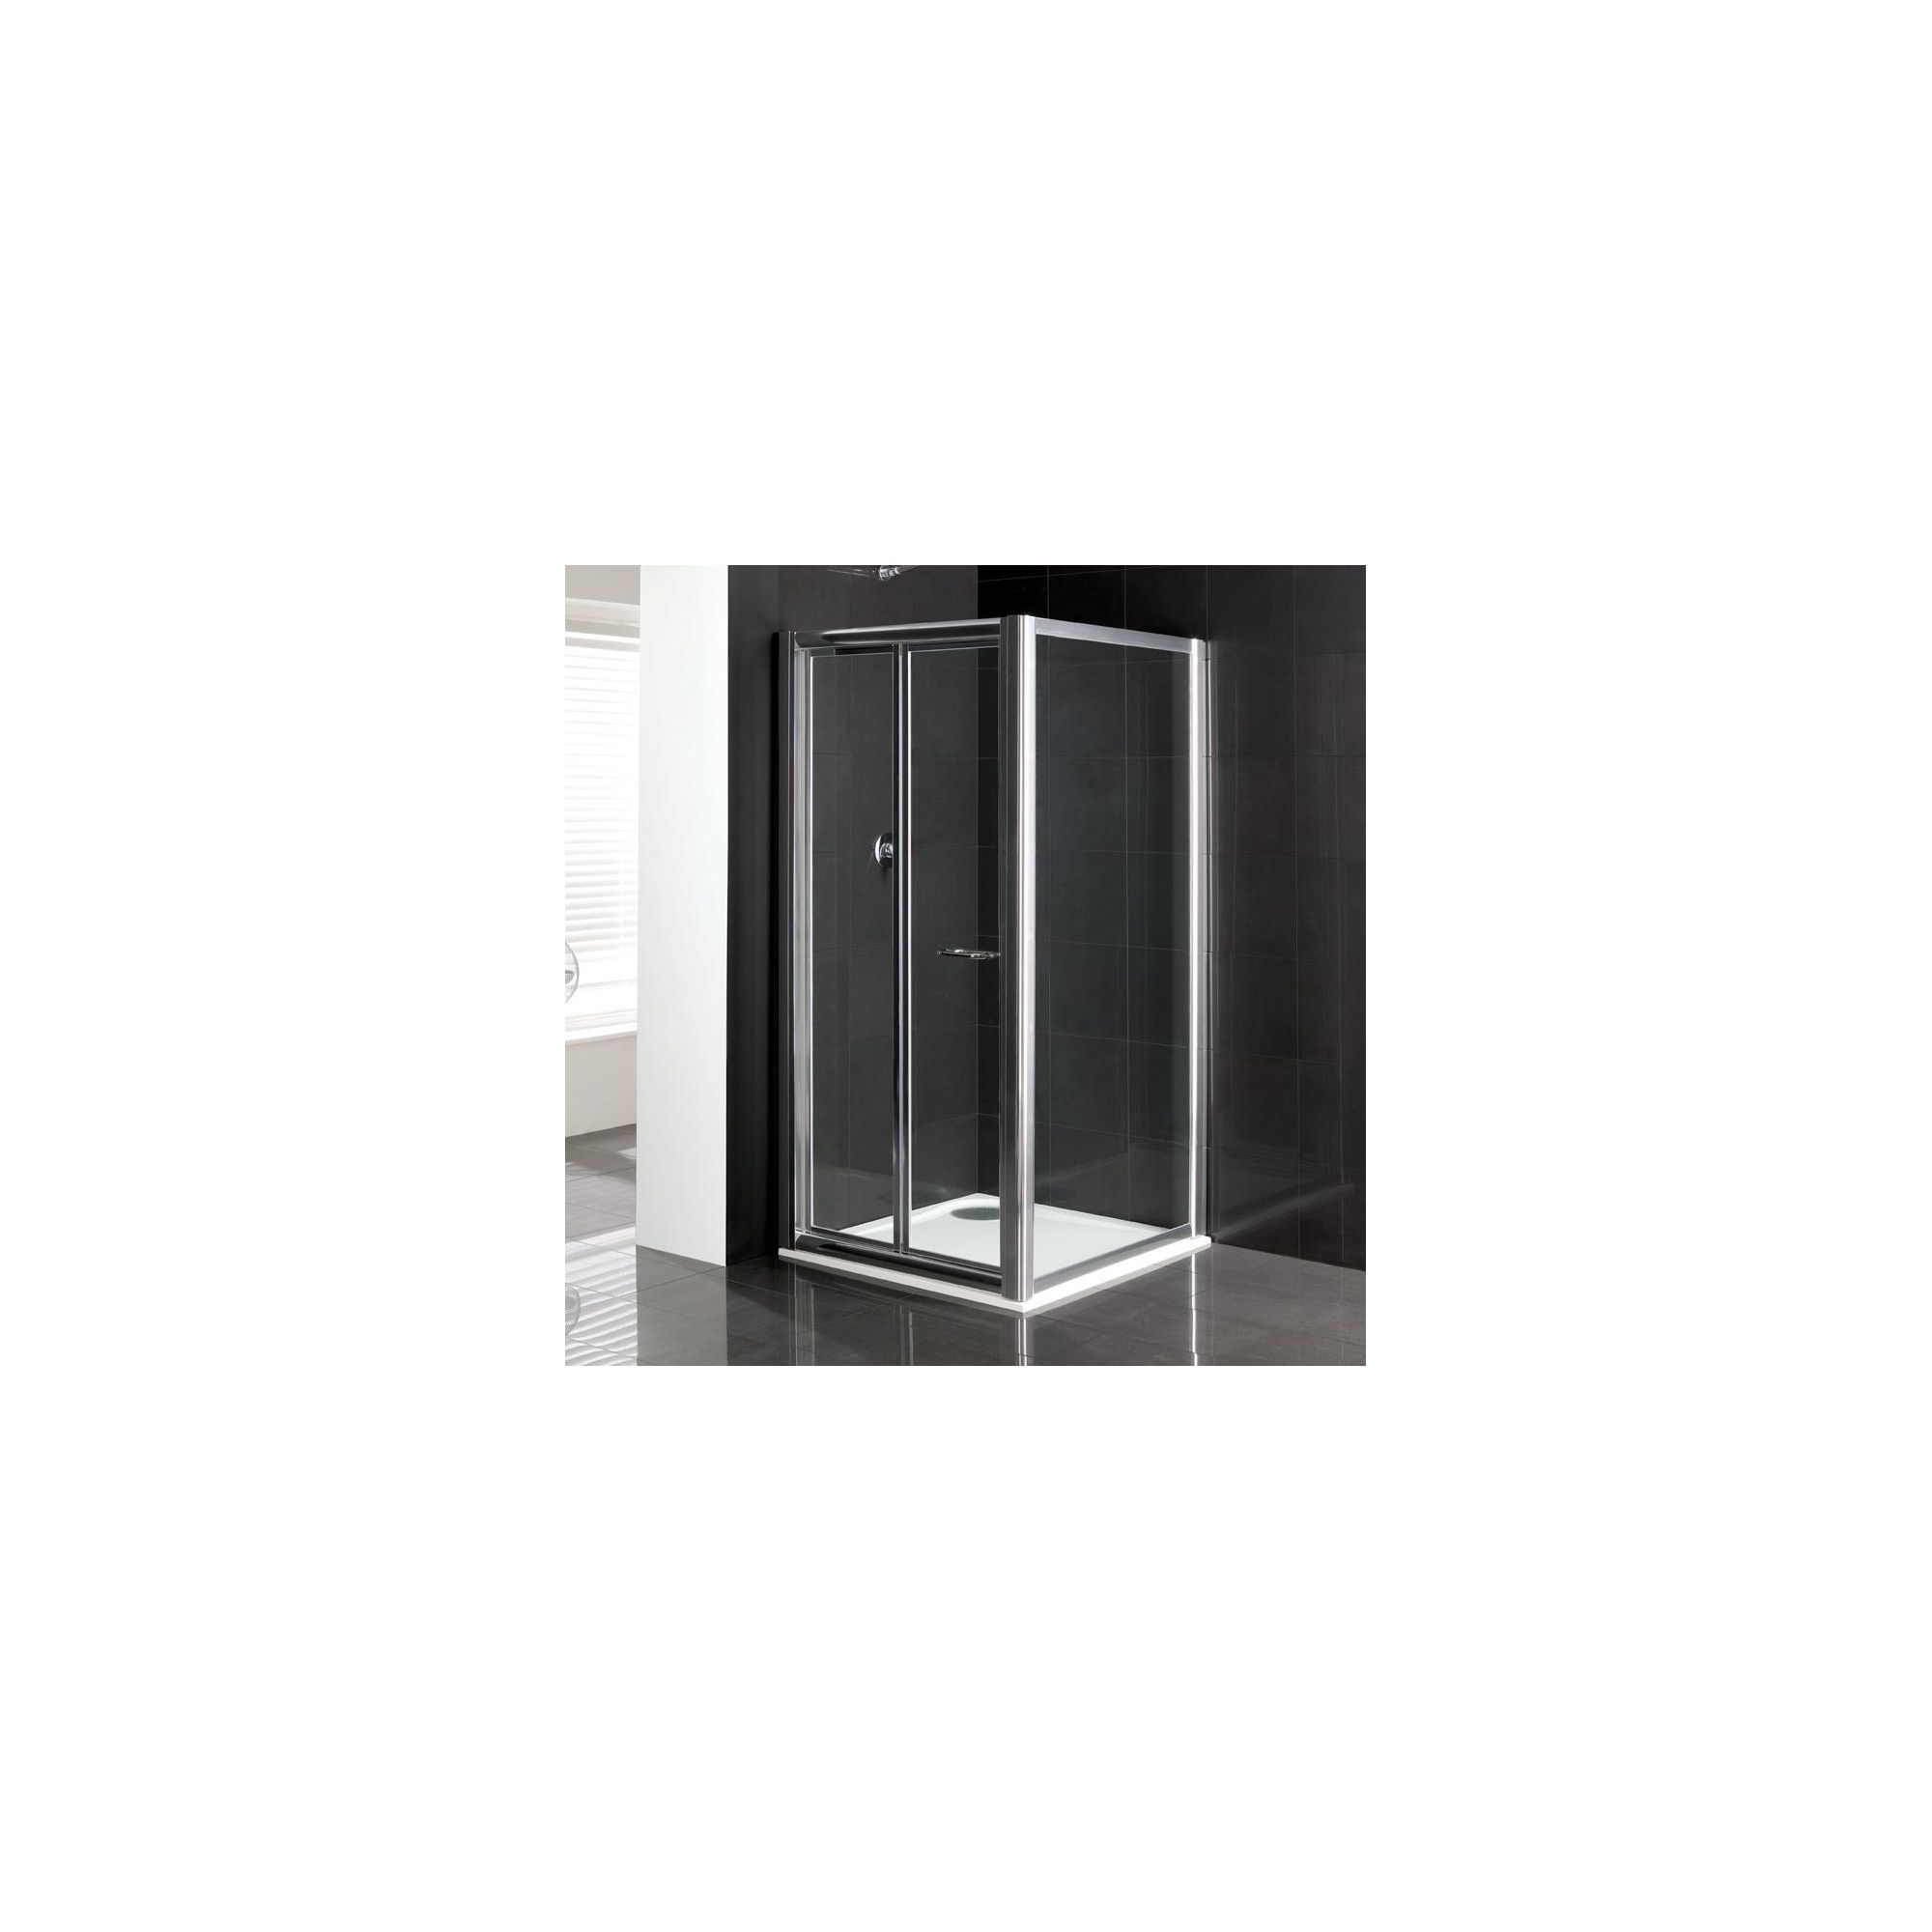 Duchy Elite Silver Bi-Fold Door Shower Enclosure with Towel Rail, 900mm x 700mm, Standard Tray, 6mm Glass at Tescos Direct